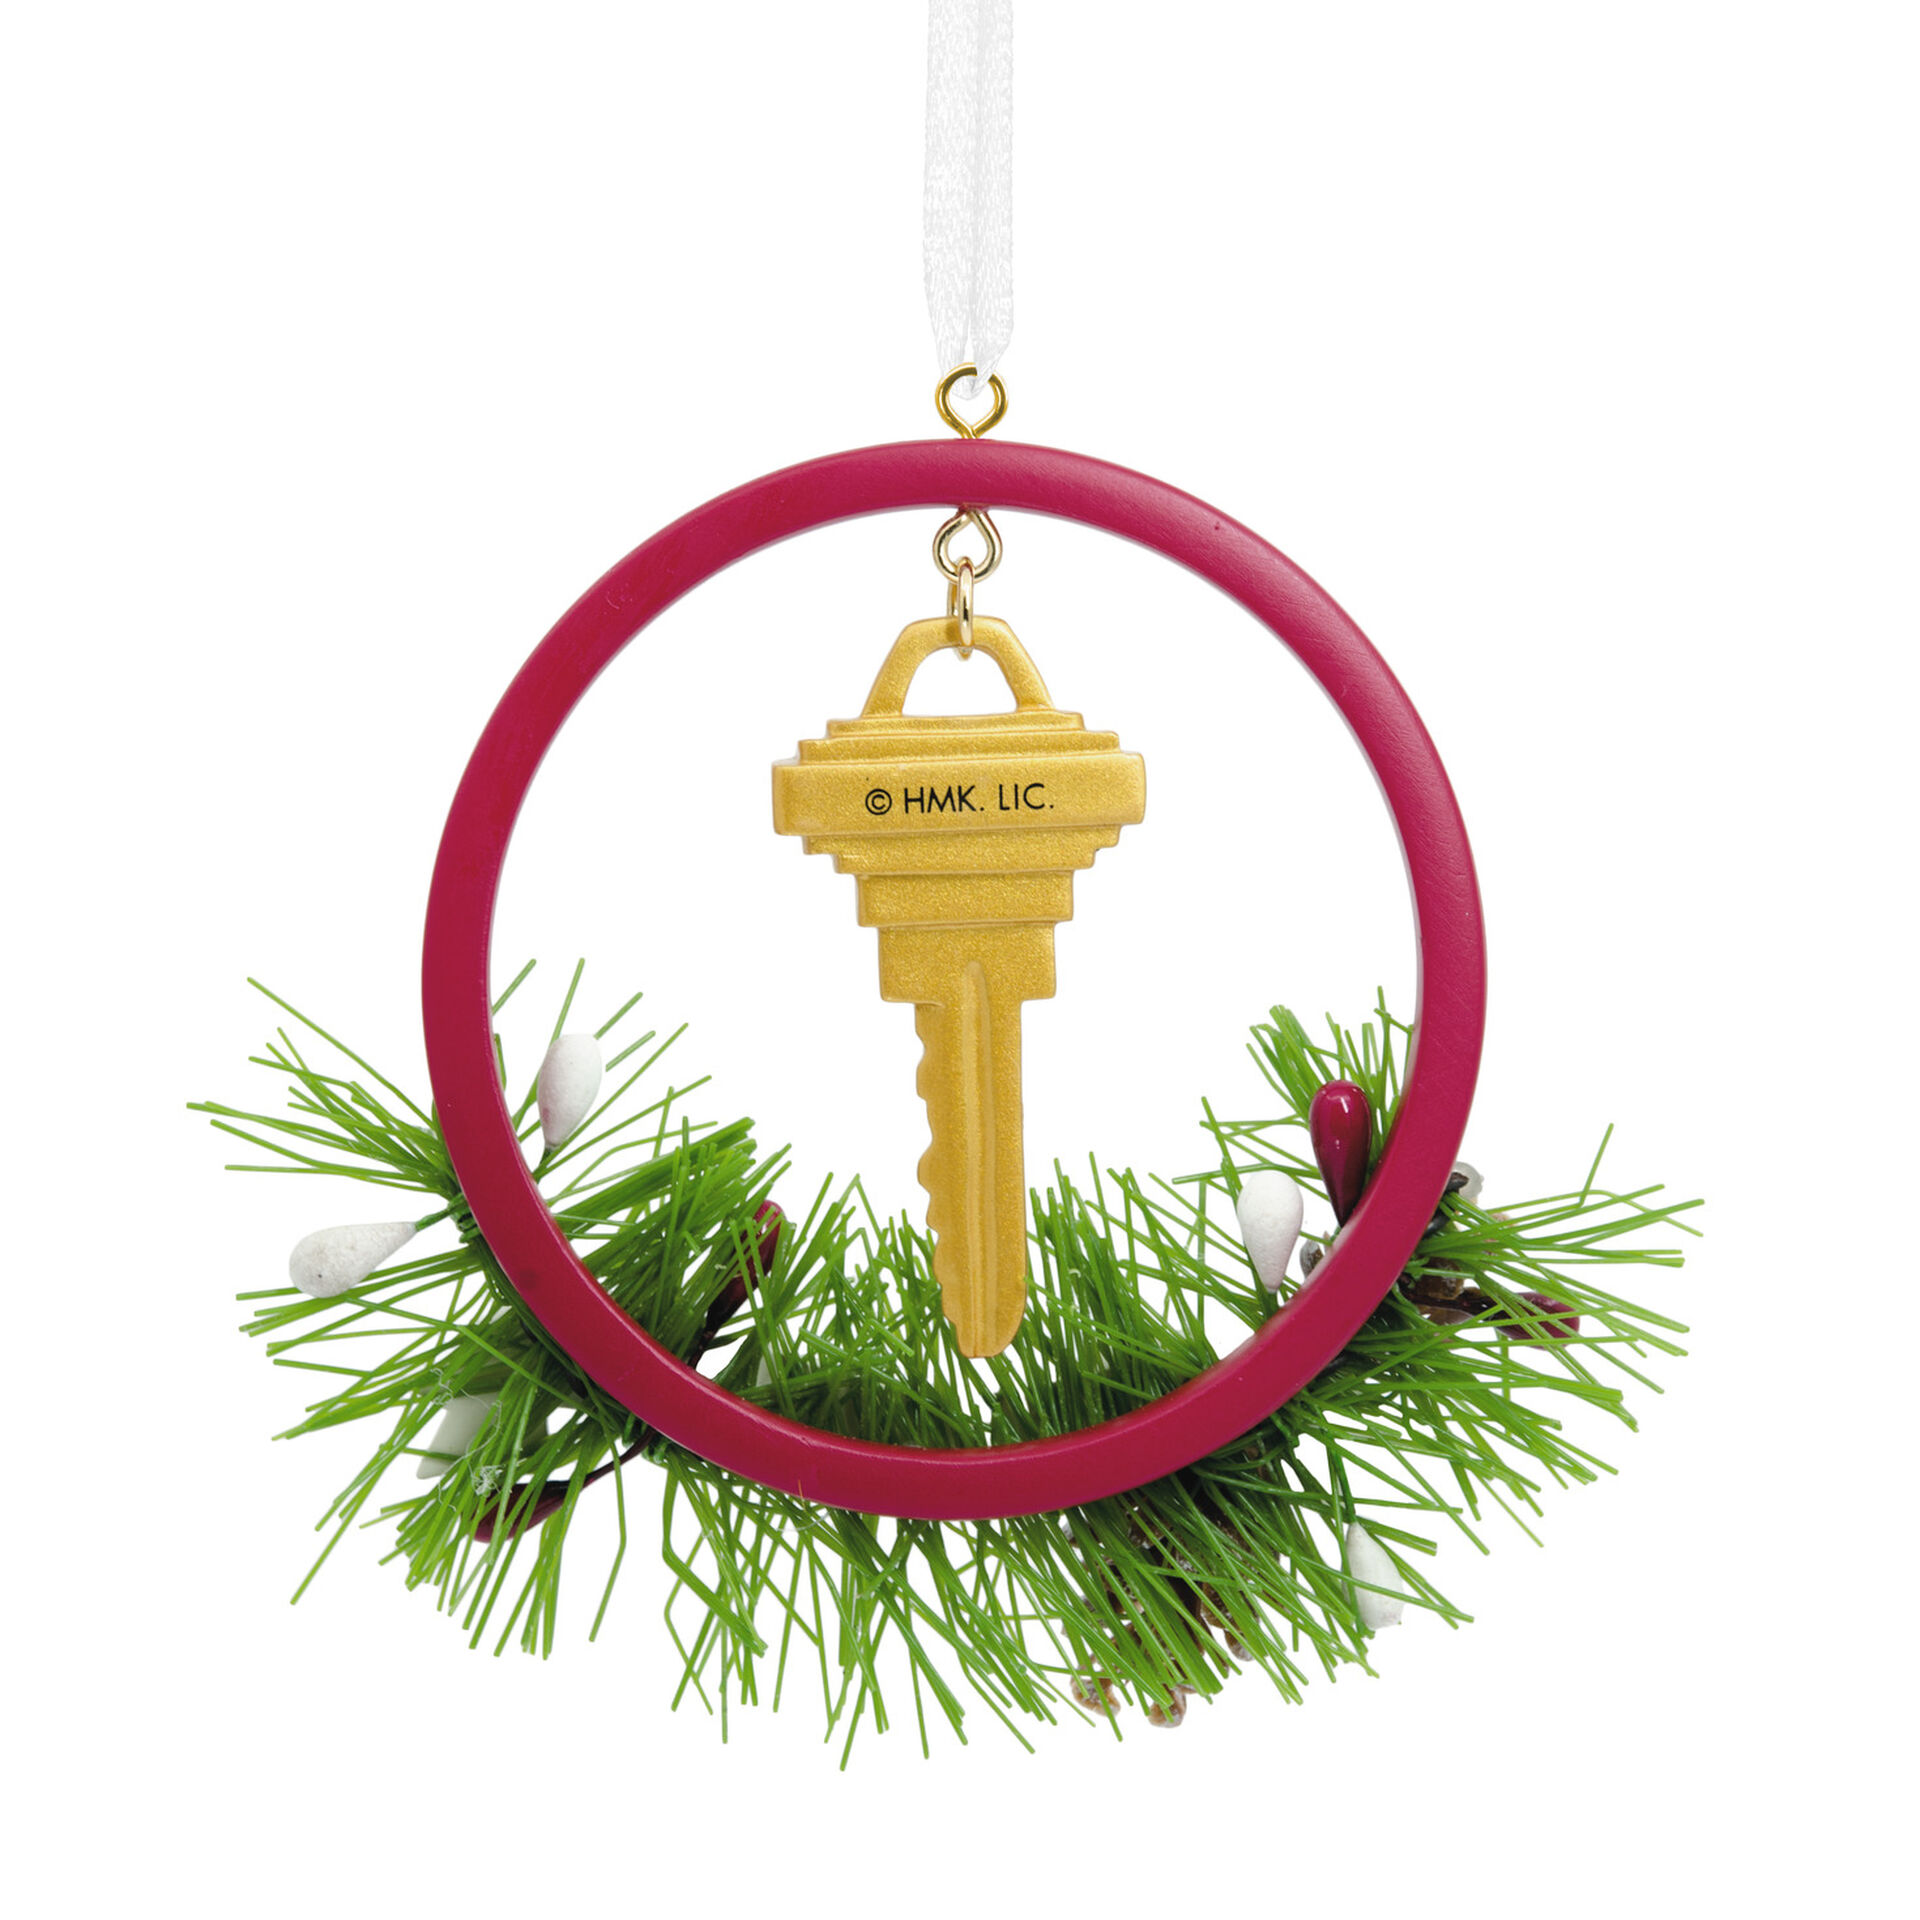 New Home Christmas Ornament 2020 1st Christmas in New Home 2020 Hallmark Ornament   Gift Ornaments